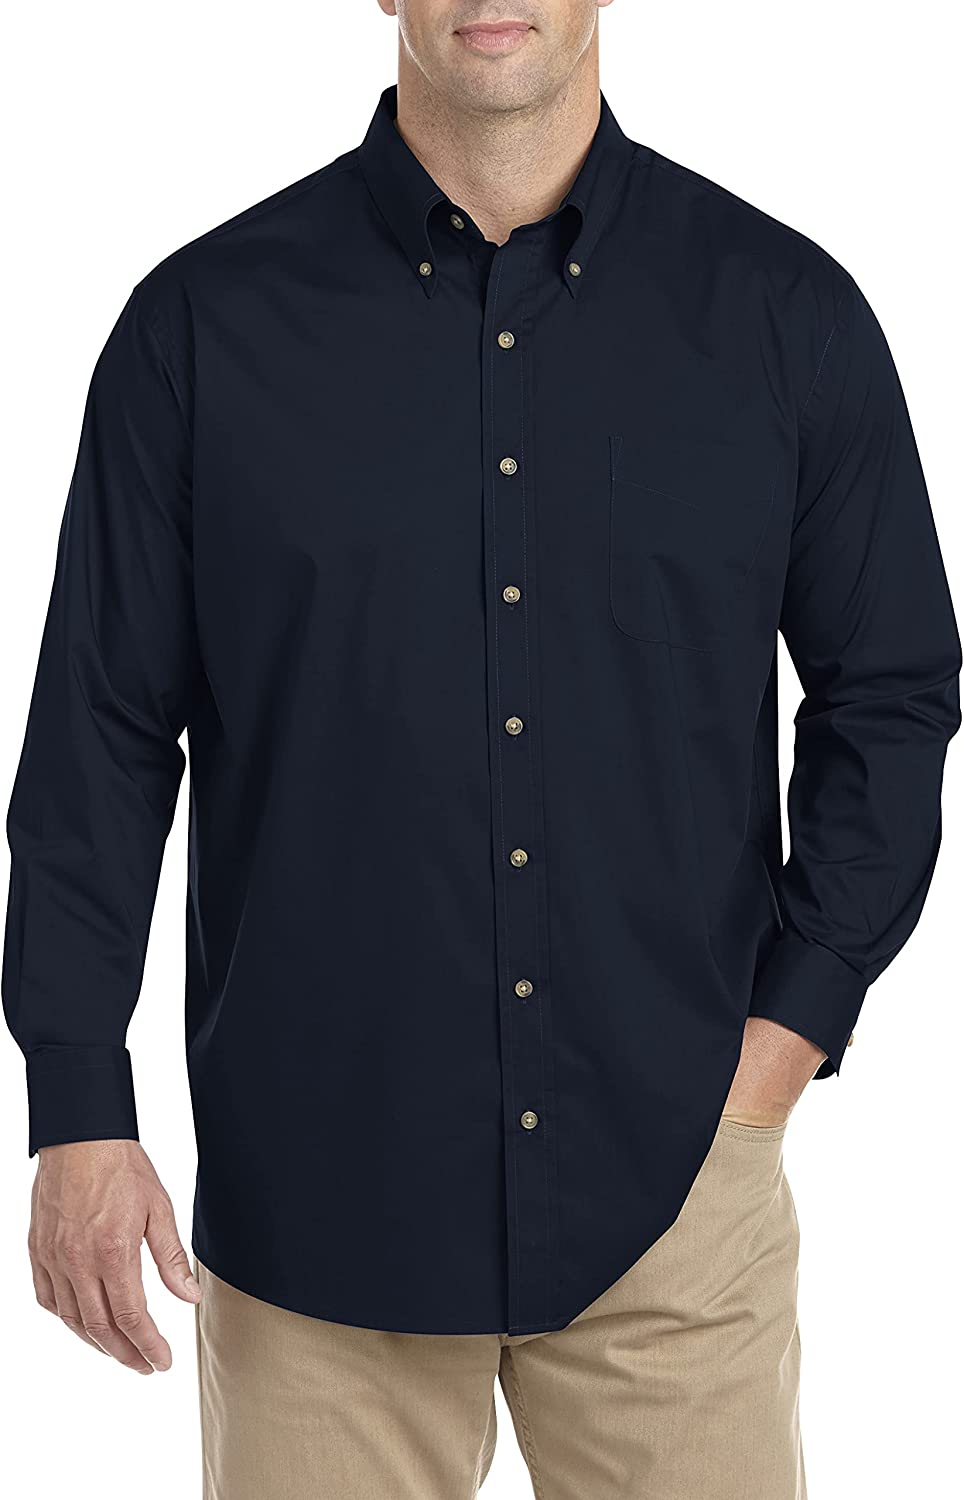 Harbor Bay by DXL Big and Tall Easy-Care Solid Sport Shirt, Mountain View Heather